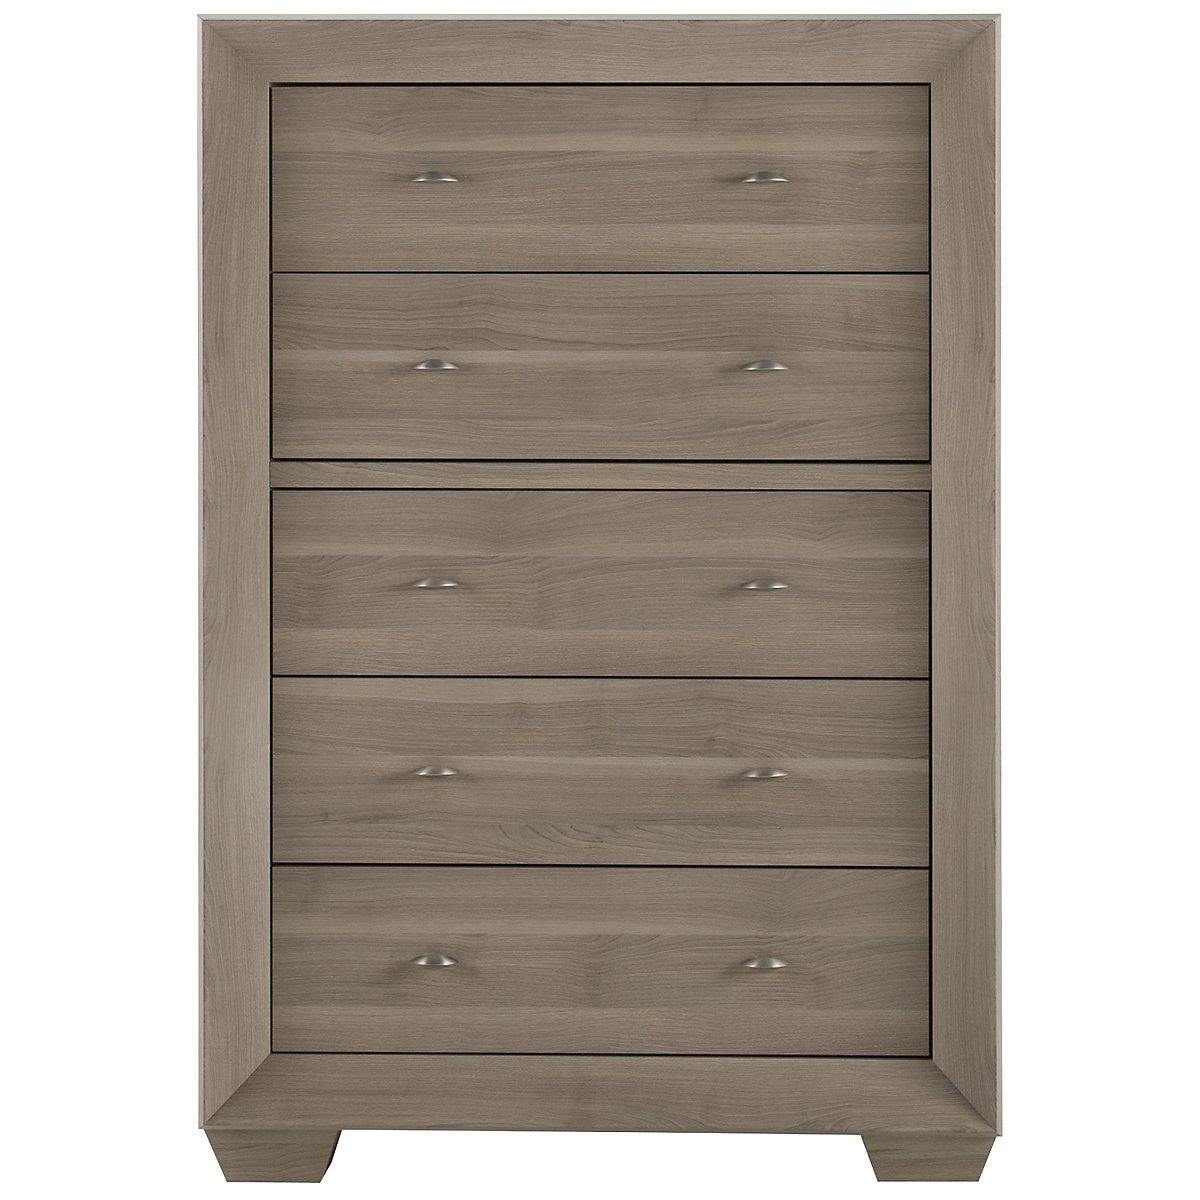 Adele2 Light Tone Drawer Chest